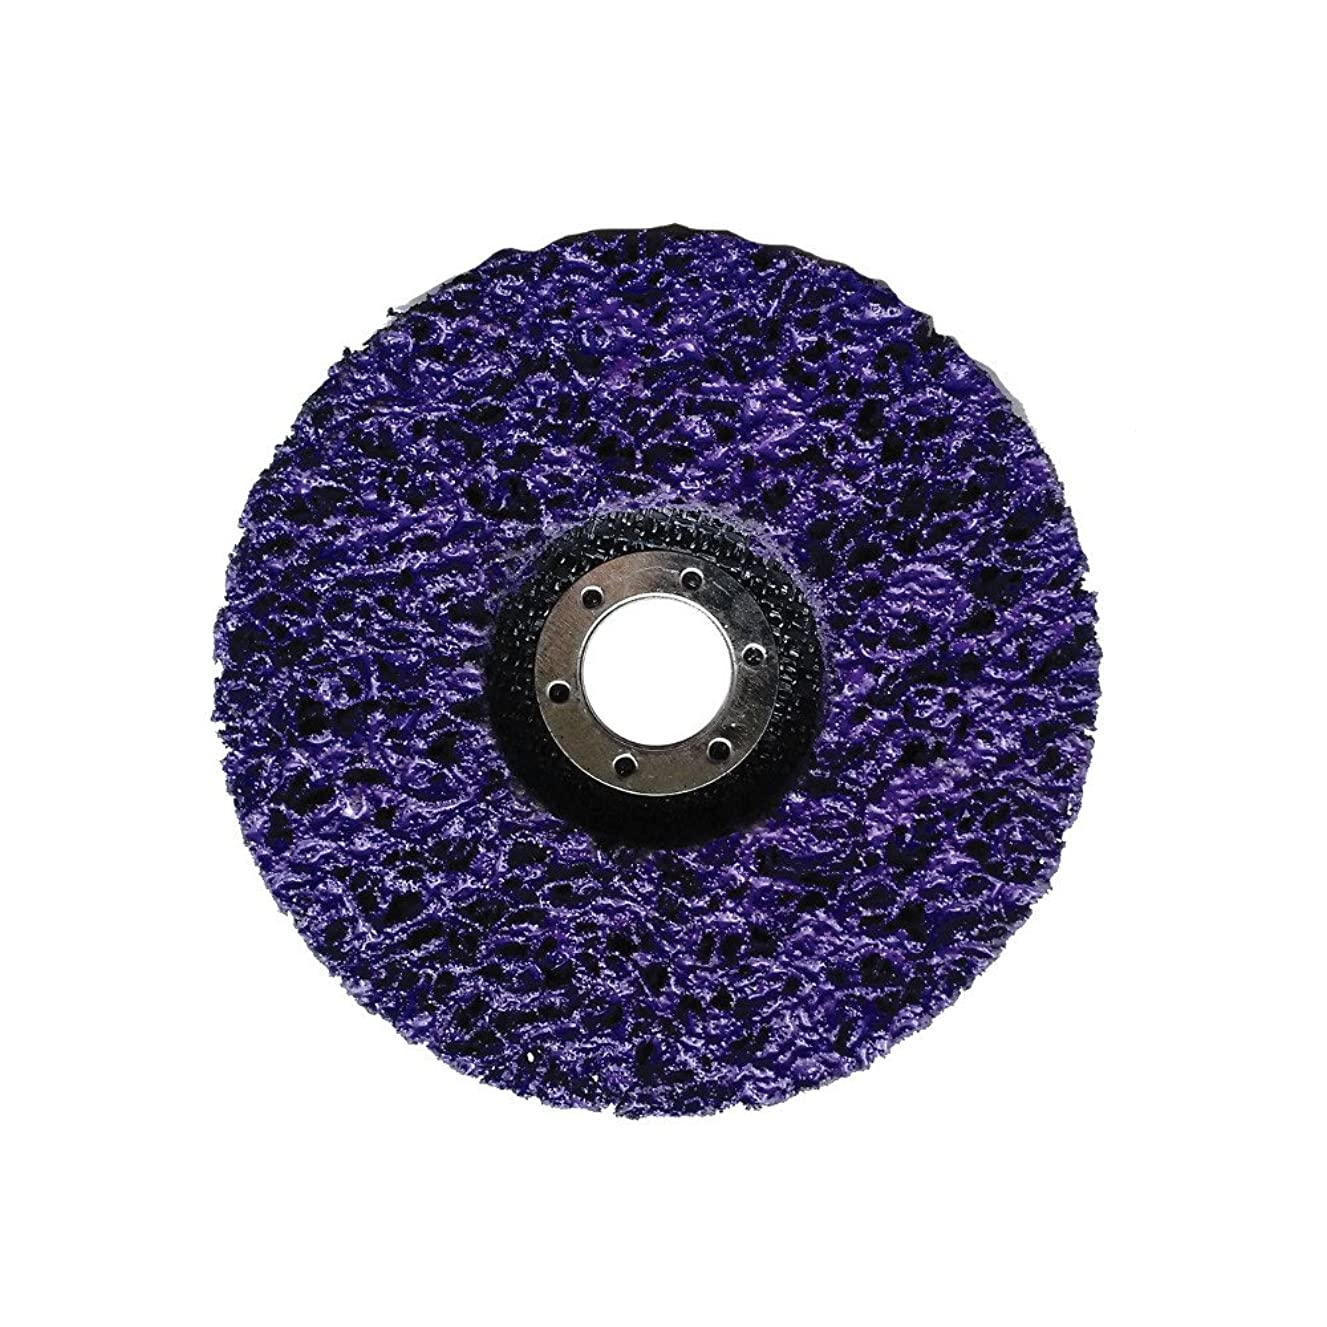 Taipan Abrasives TO-7008 Original Strip & Finish Disc, Depressed, 7